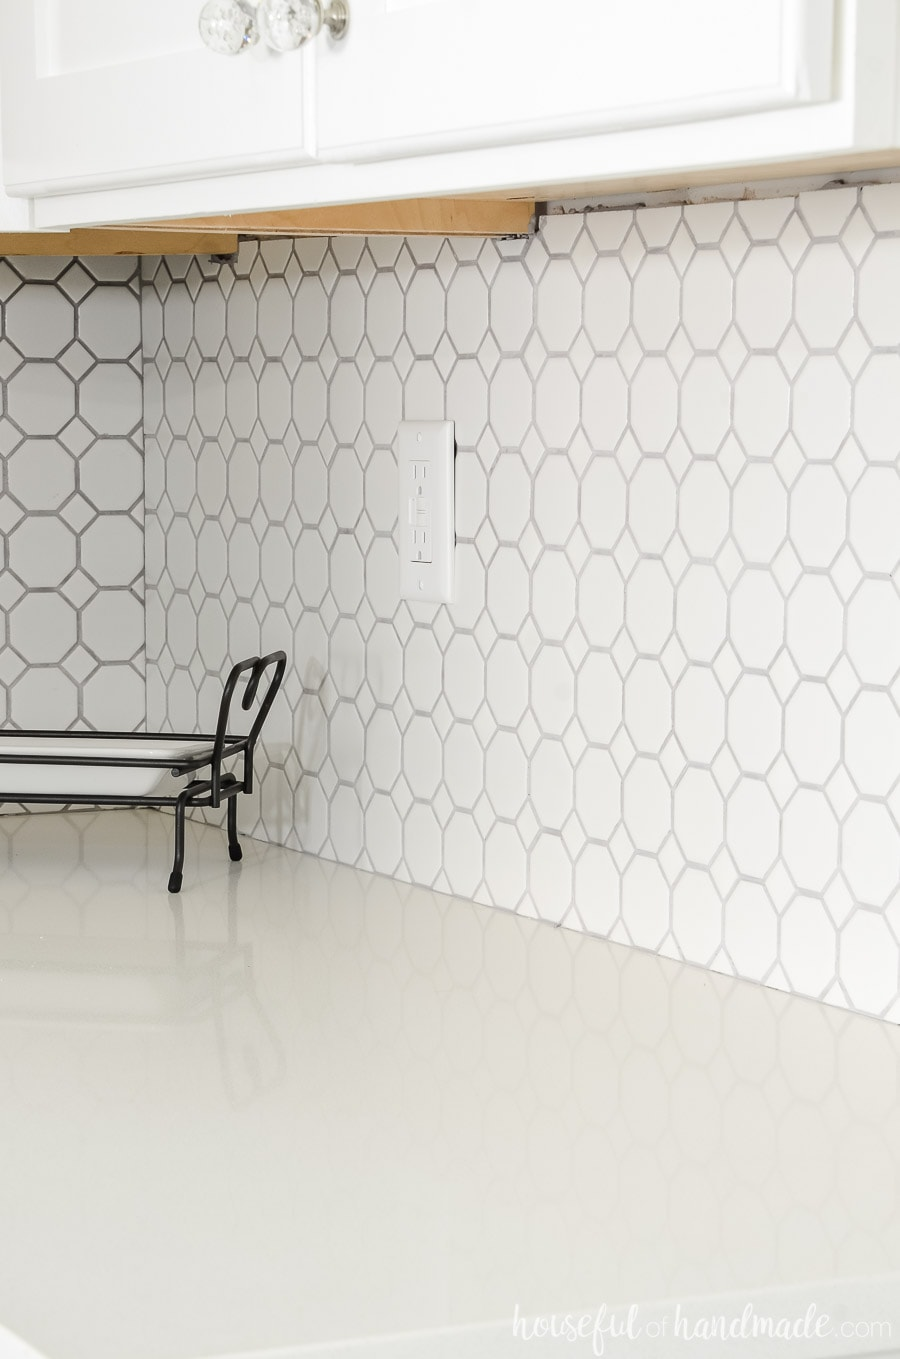 Beautiful Retro Octagon White Dot tile from Jeffrey court is the perfect backsplash to add texture and personality to any space. Housefulofhandmade.com